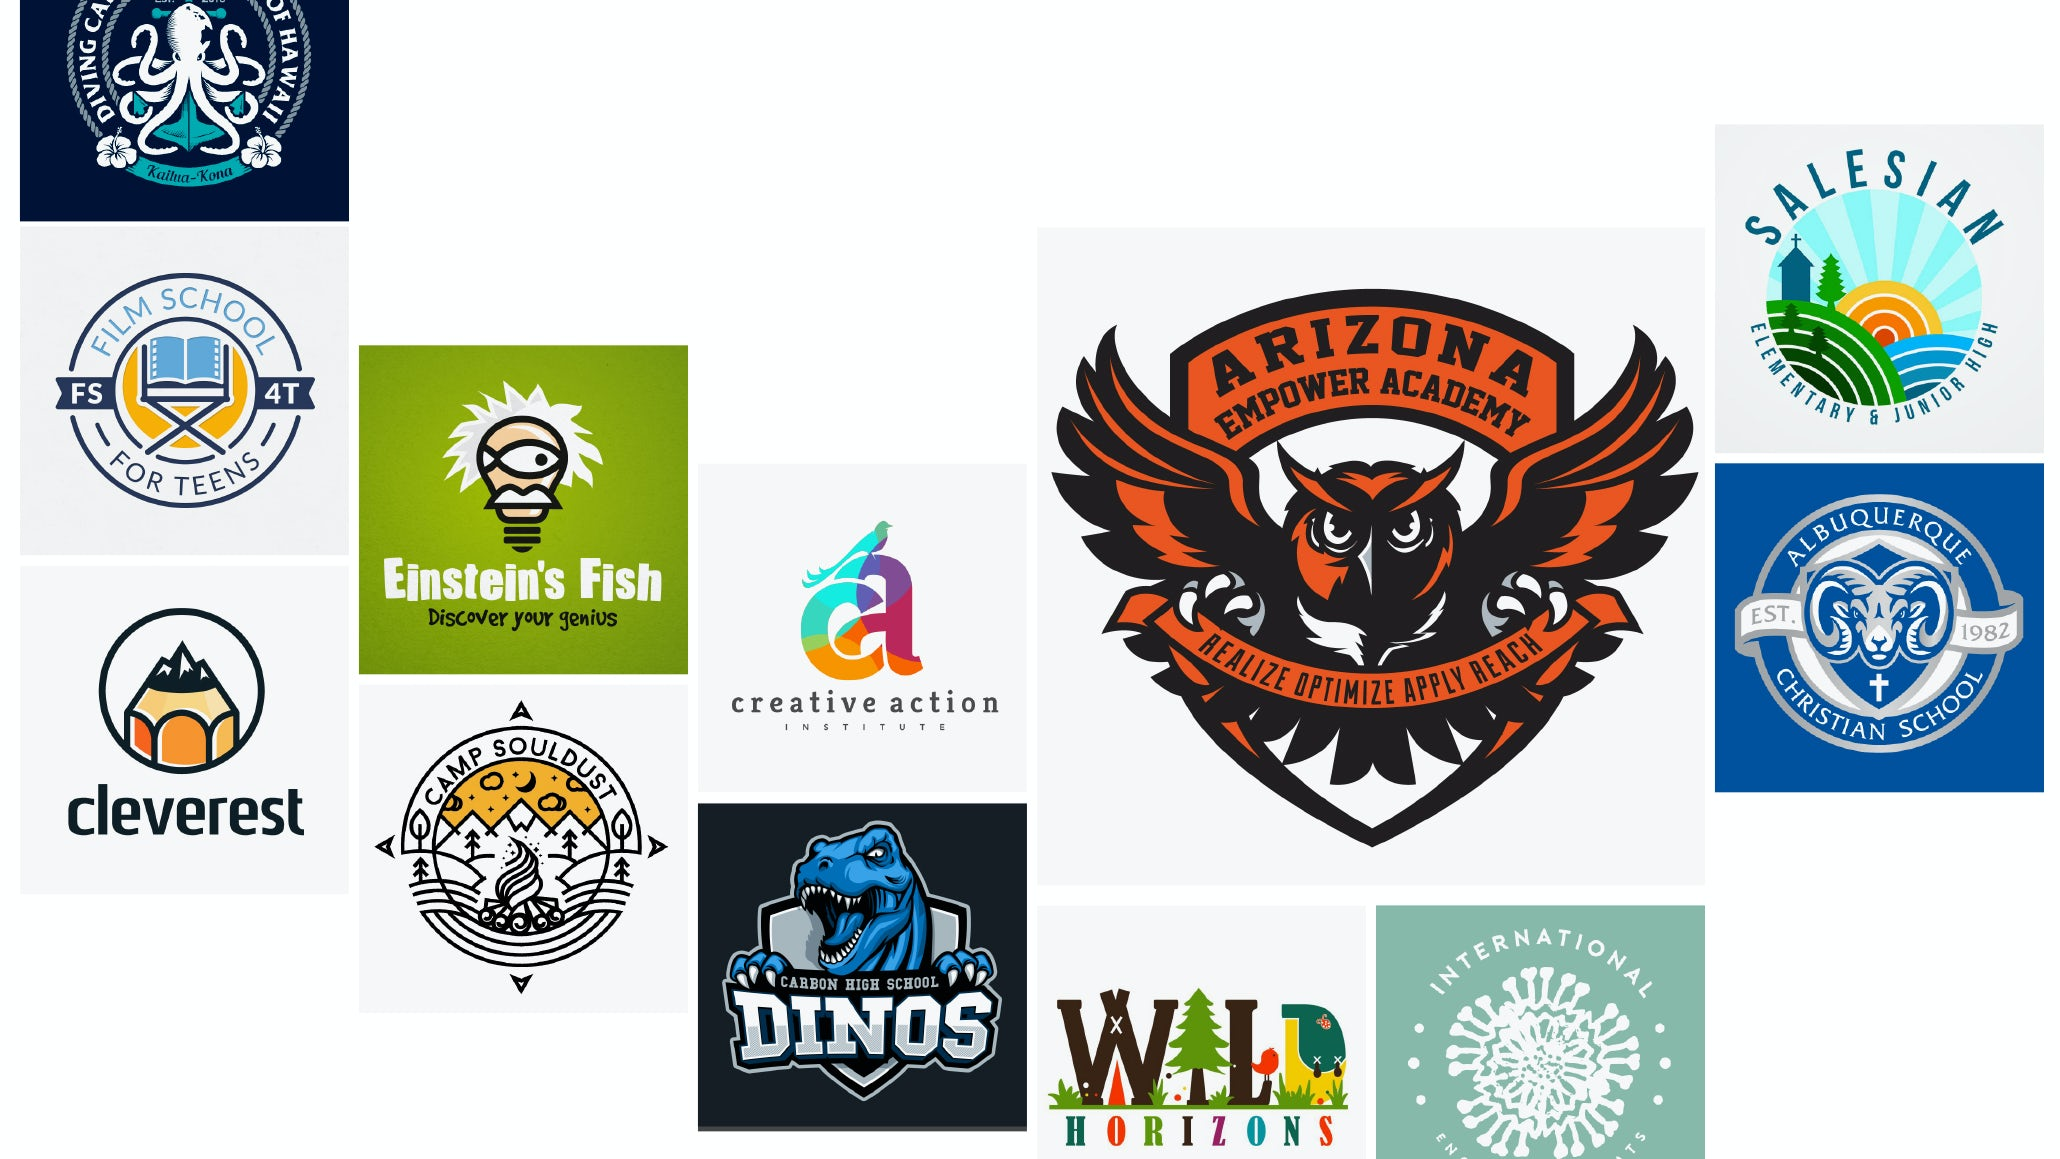 29 education and school logos that get an A+ - 99designs